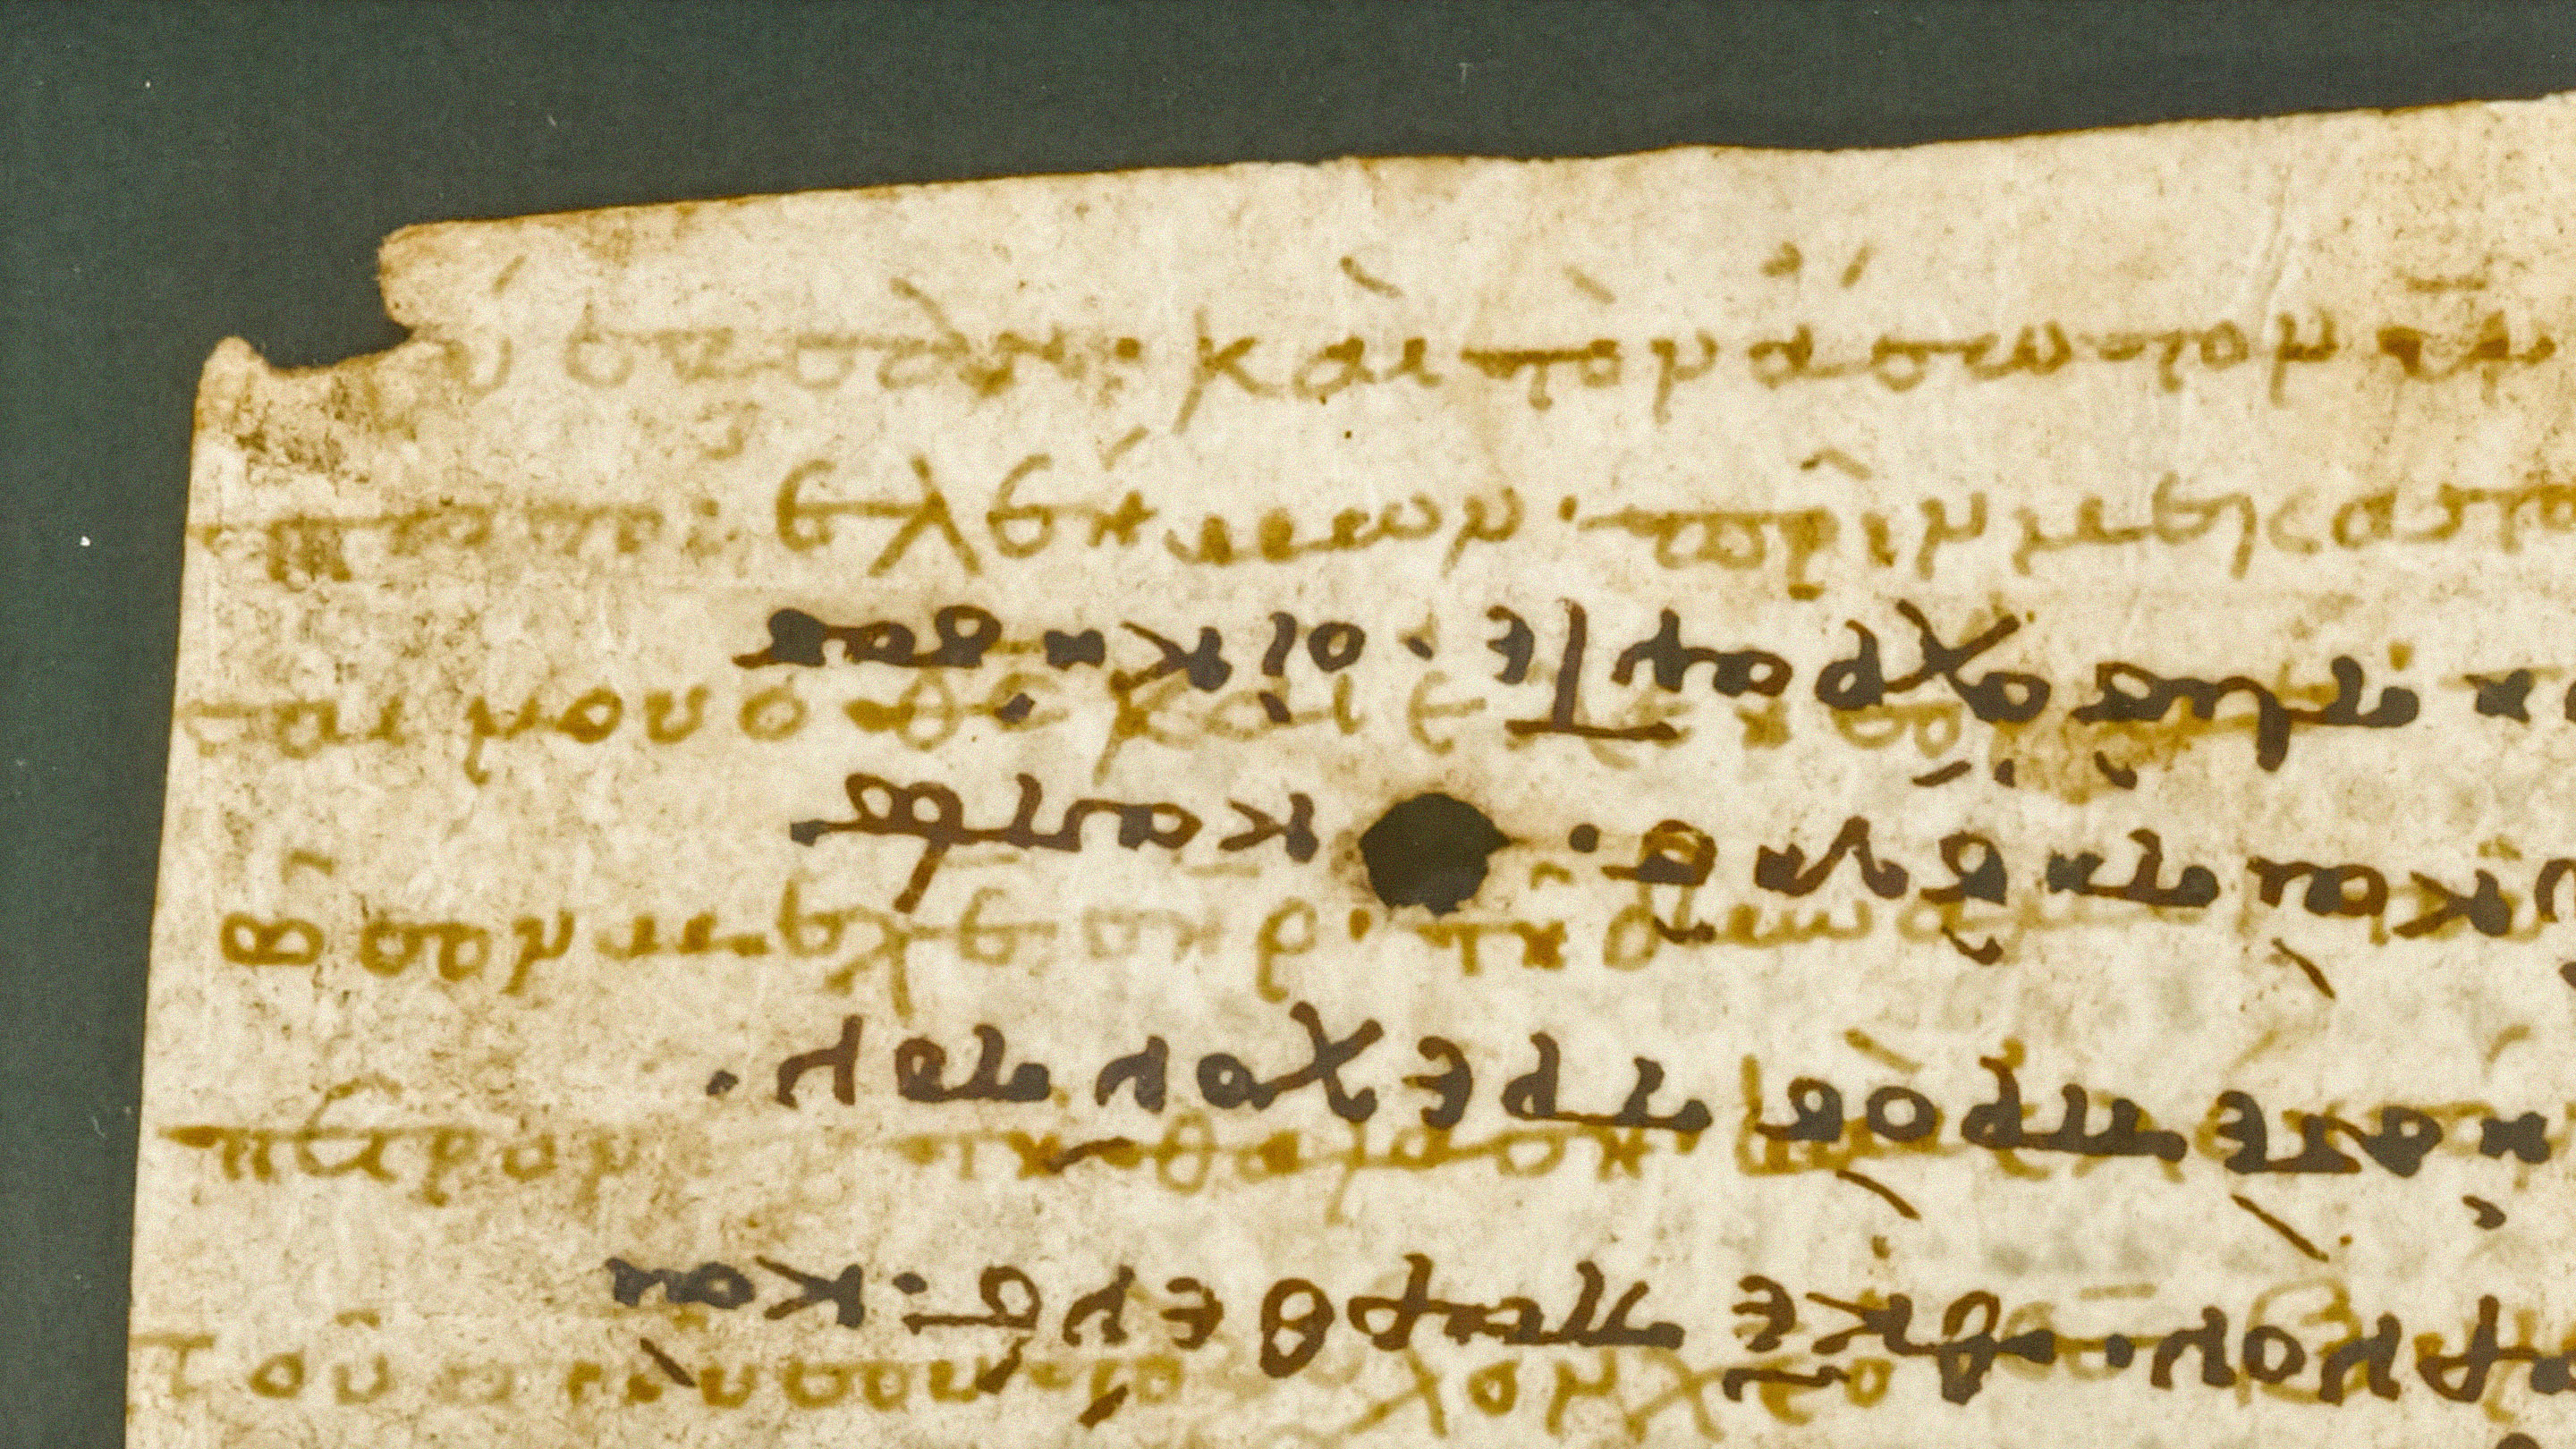 Gregory Heyworth: How I'm discovering the secrets of ancient texts thumbnail